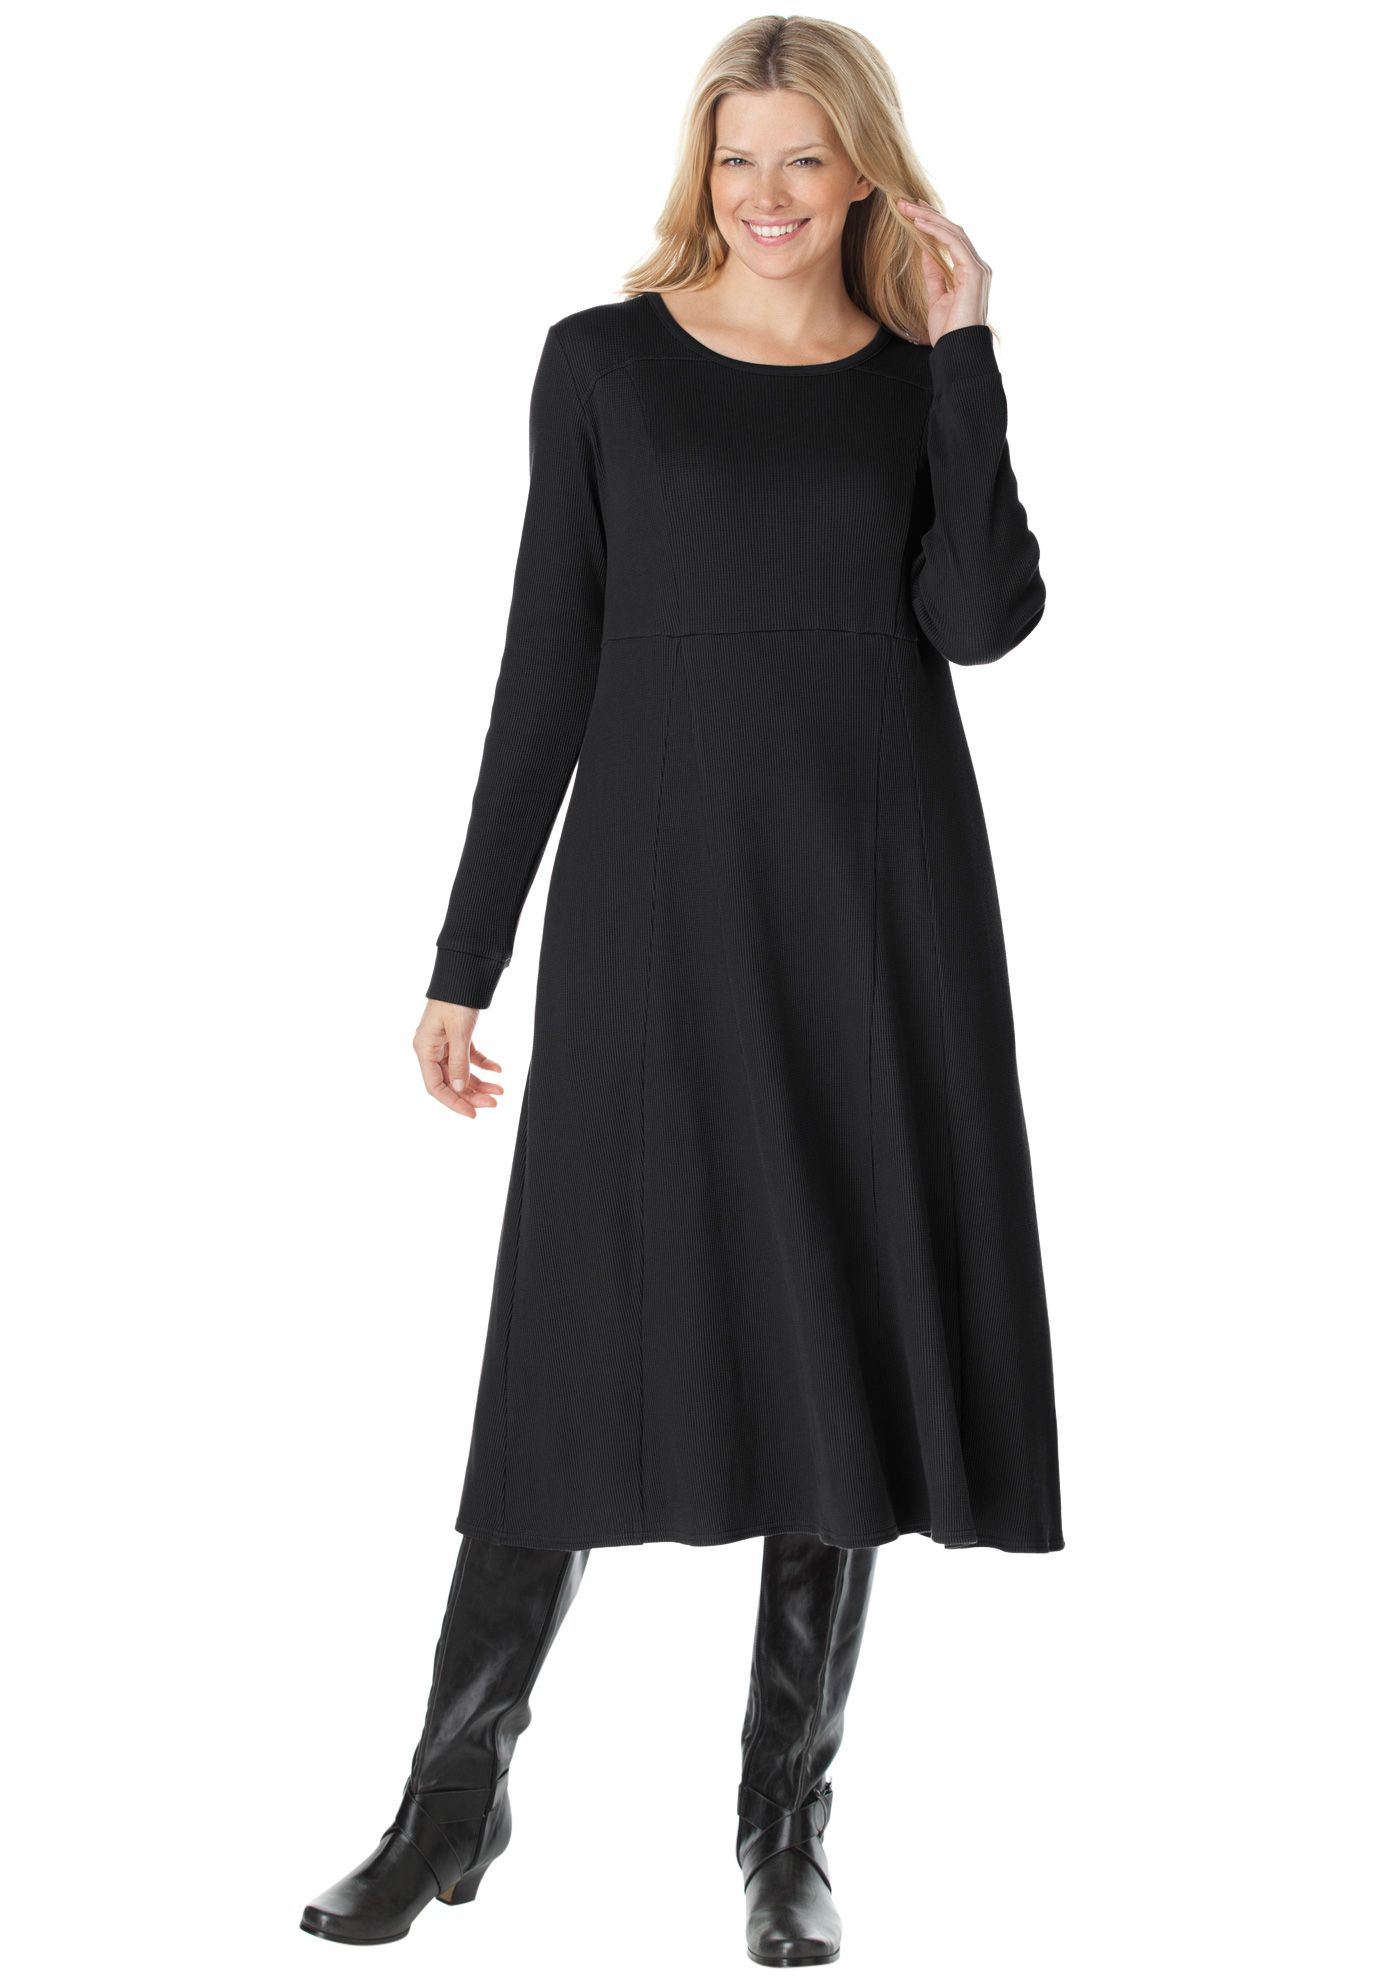 Thermal knit A-line dress   Plus Size Career Dresses   Woman ...